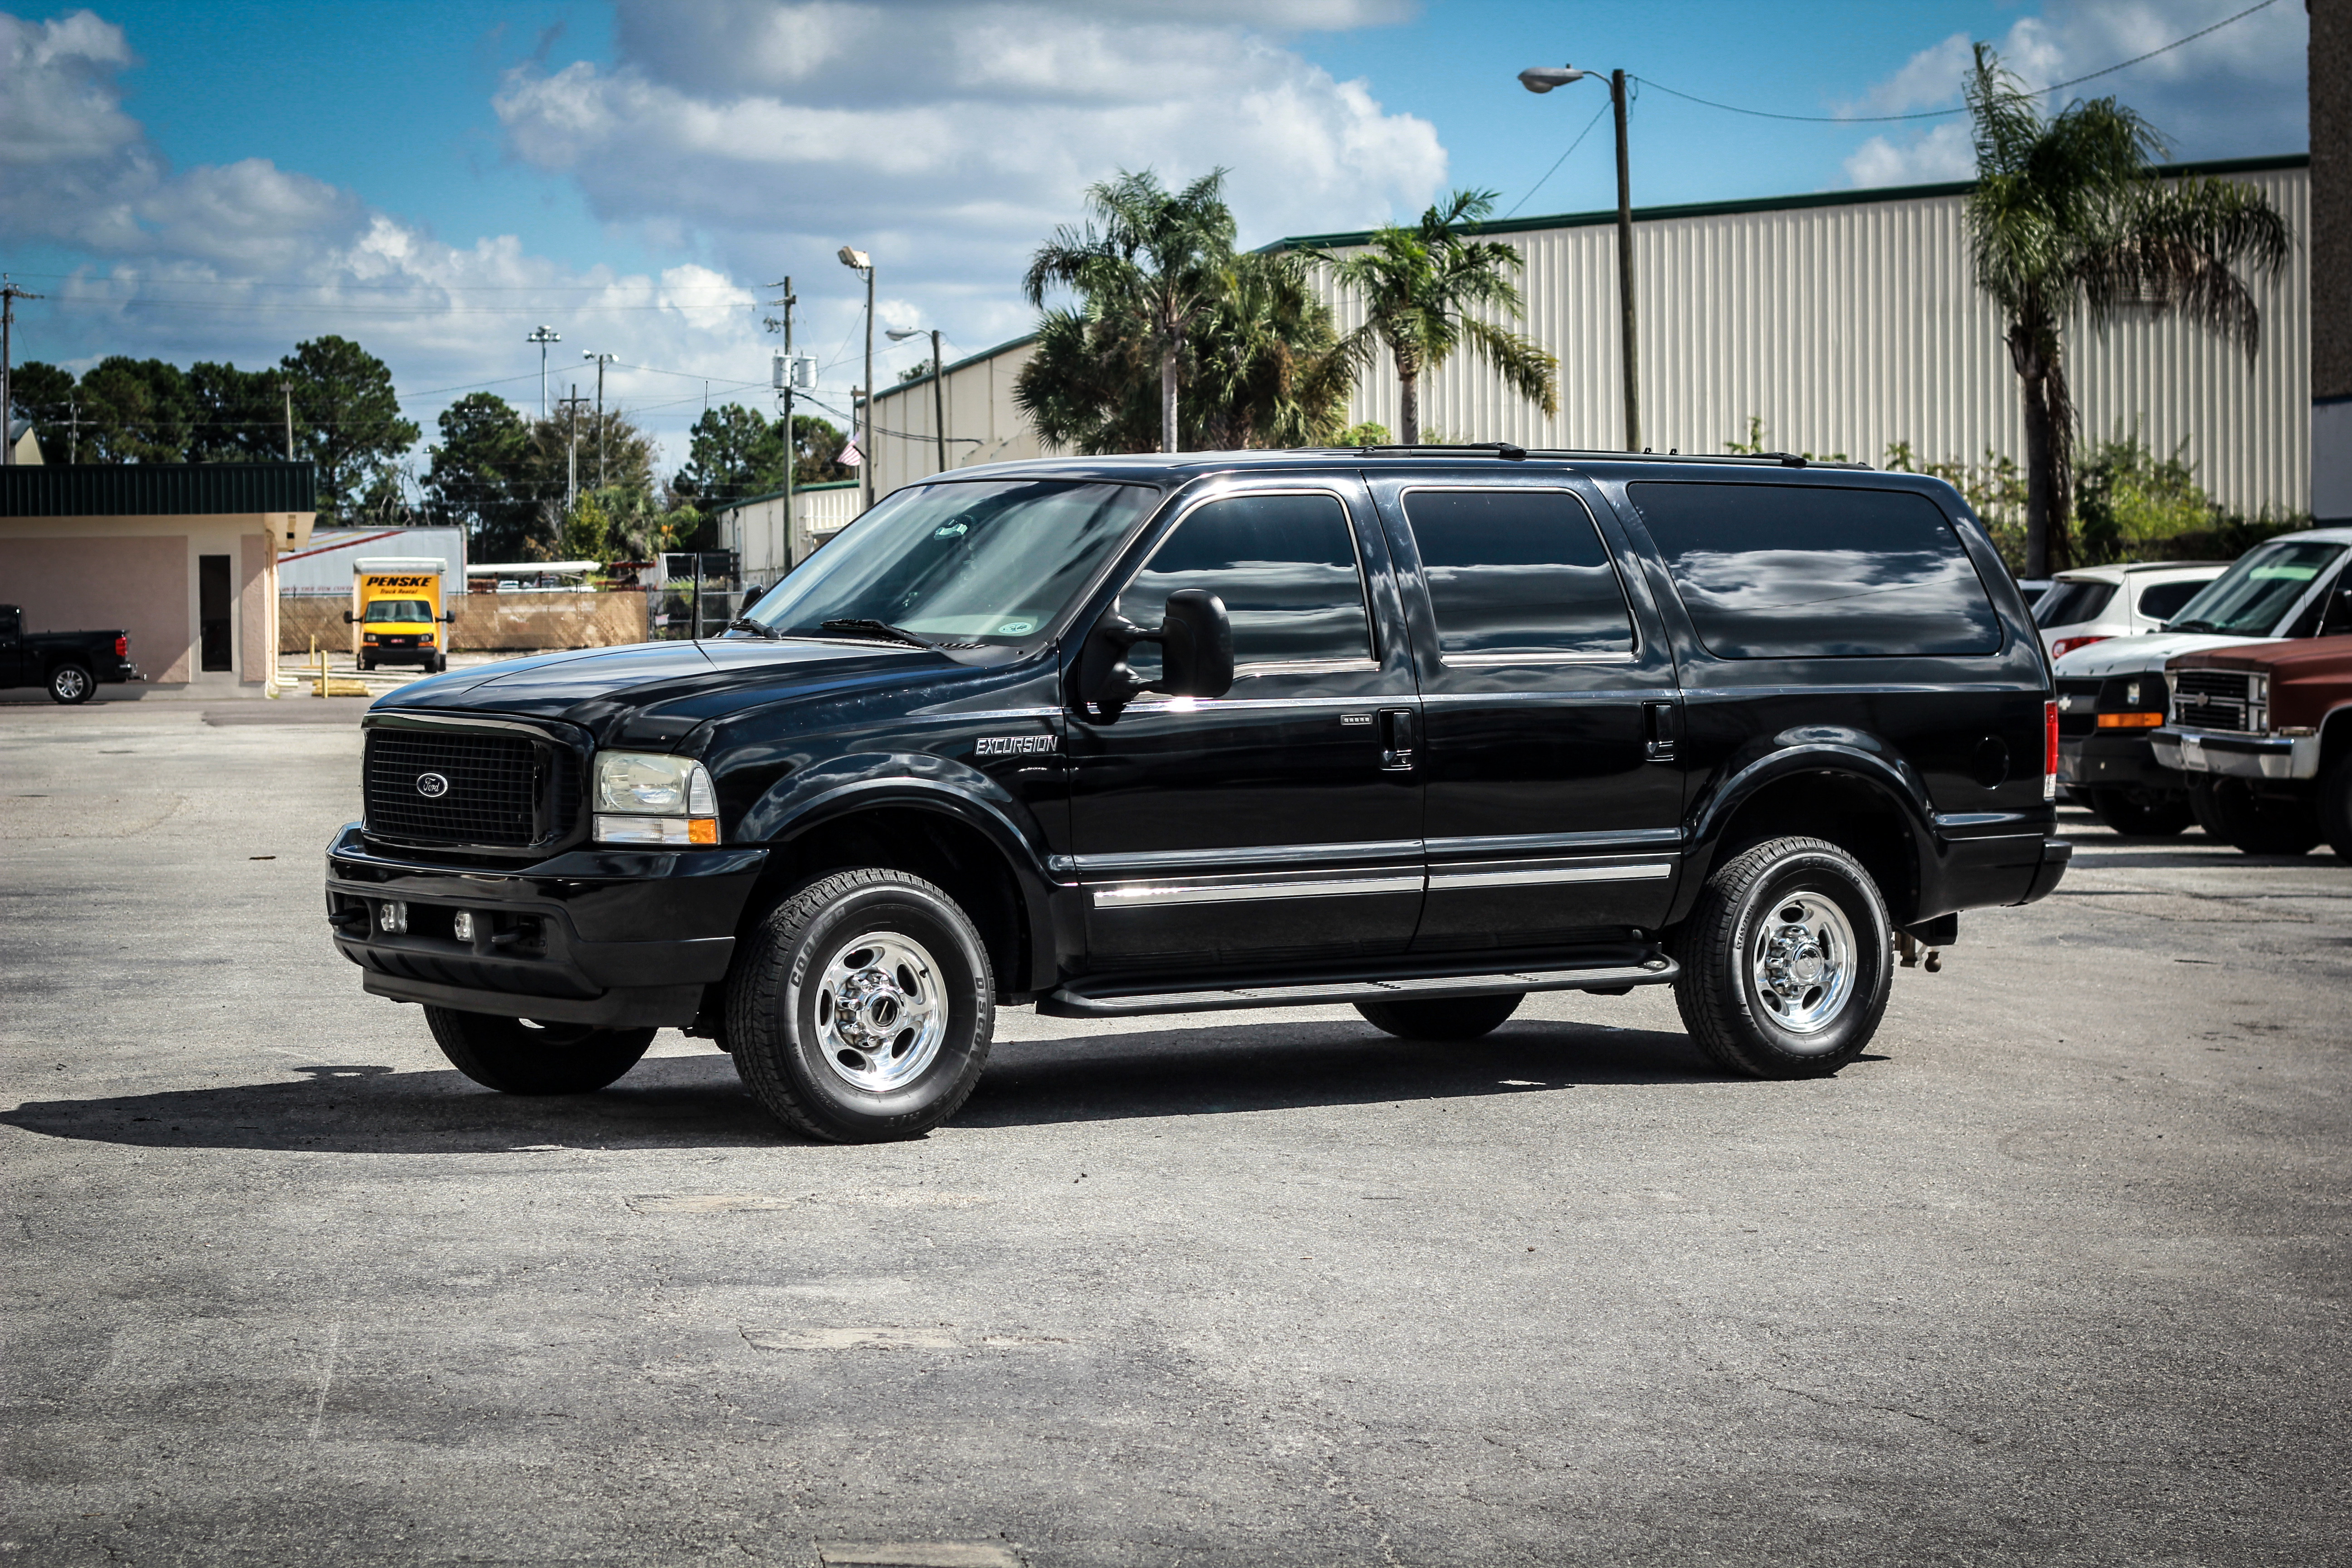 2002 Ford Excursion Build Skar Audio Performance Audio Reasonable Prices 1 Car Audio Enthusiast Forum In The World Smd Meade916